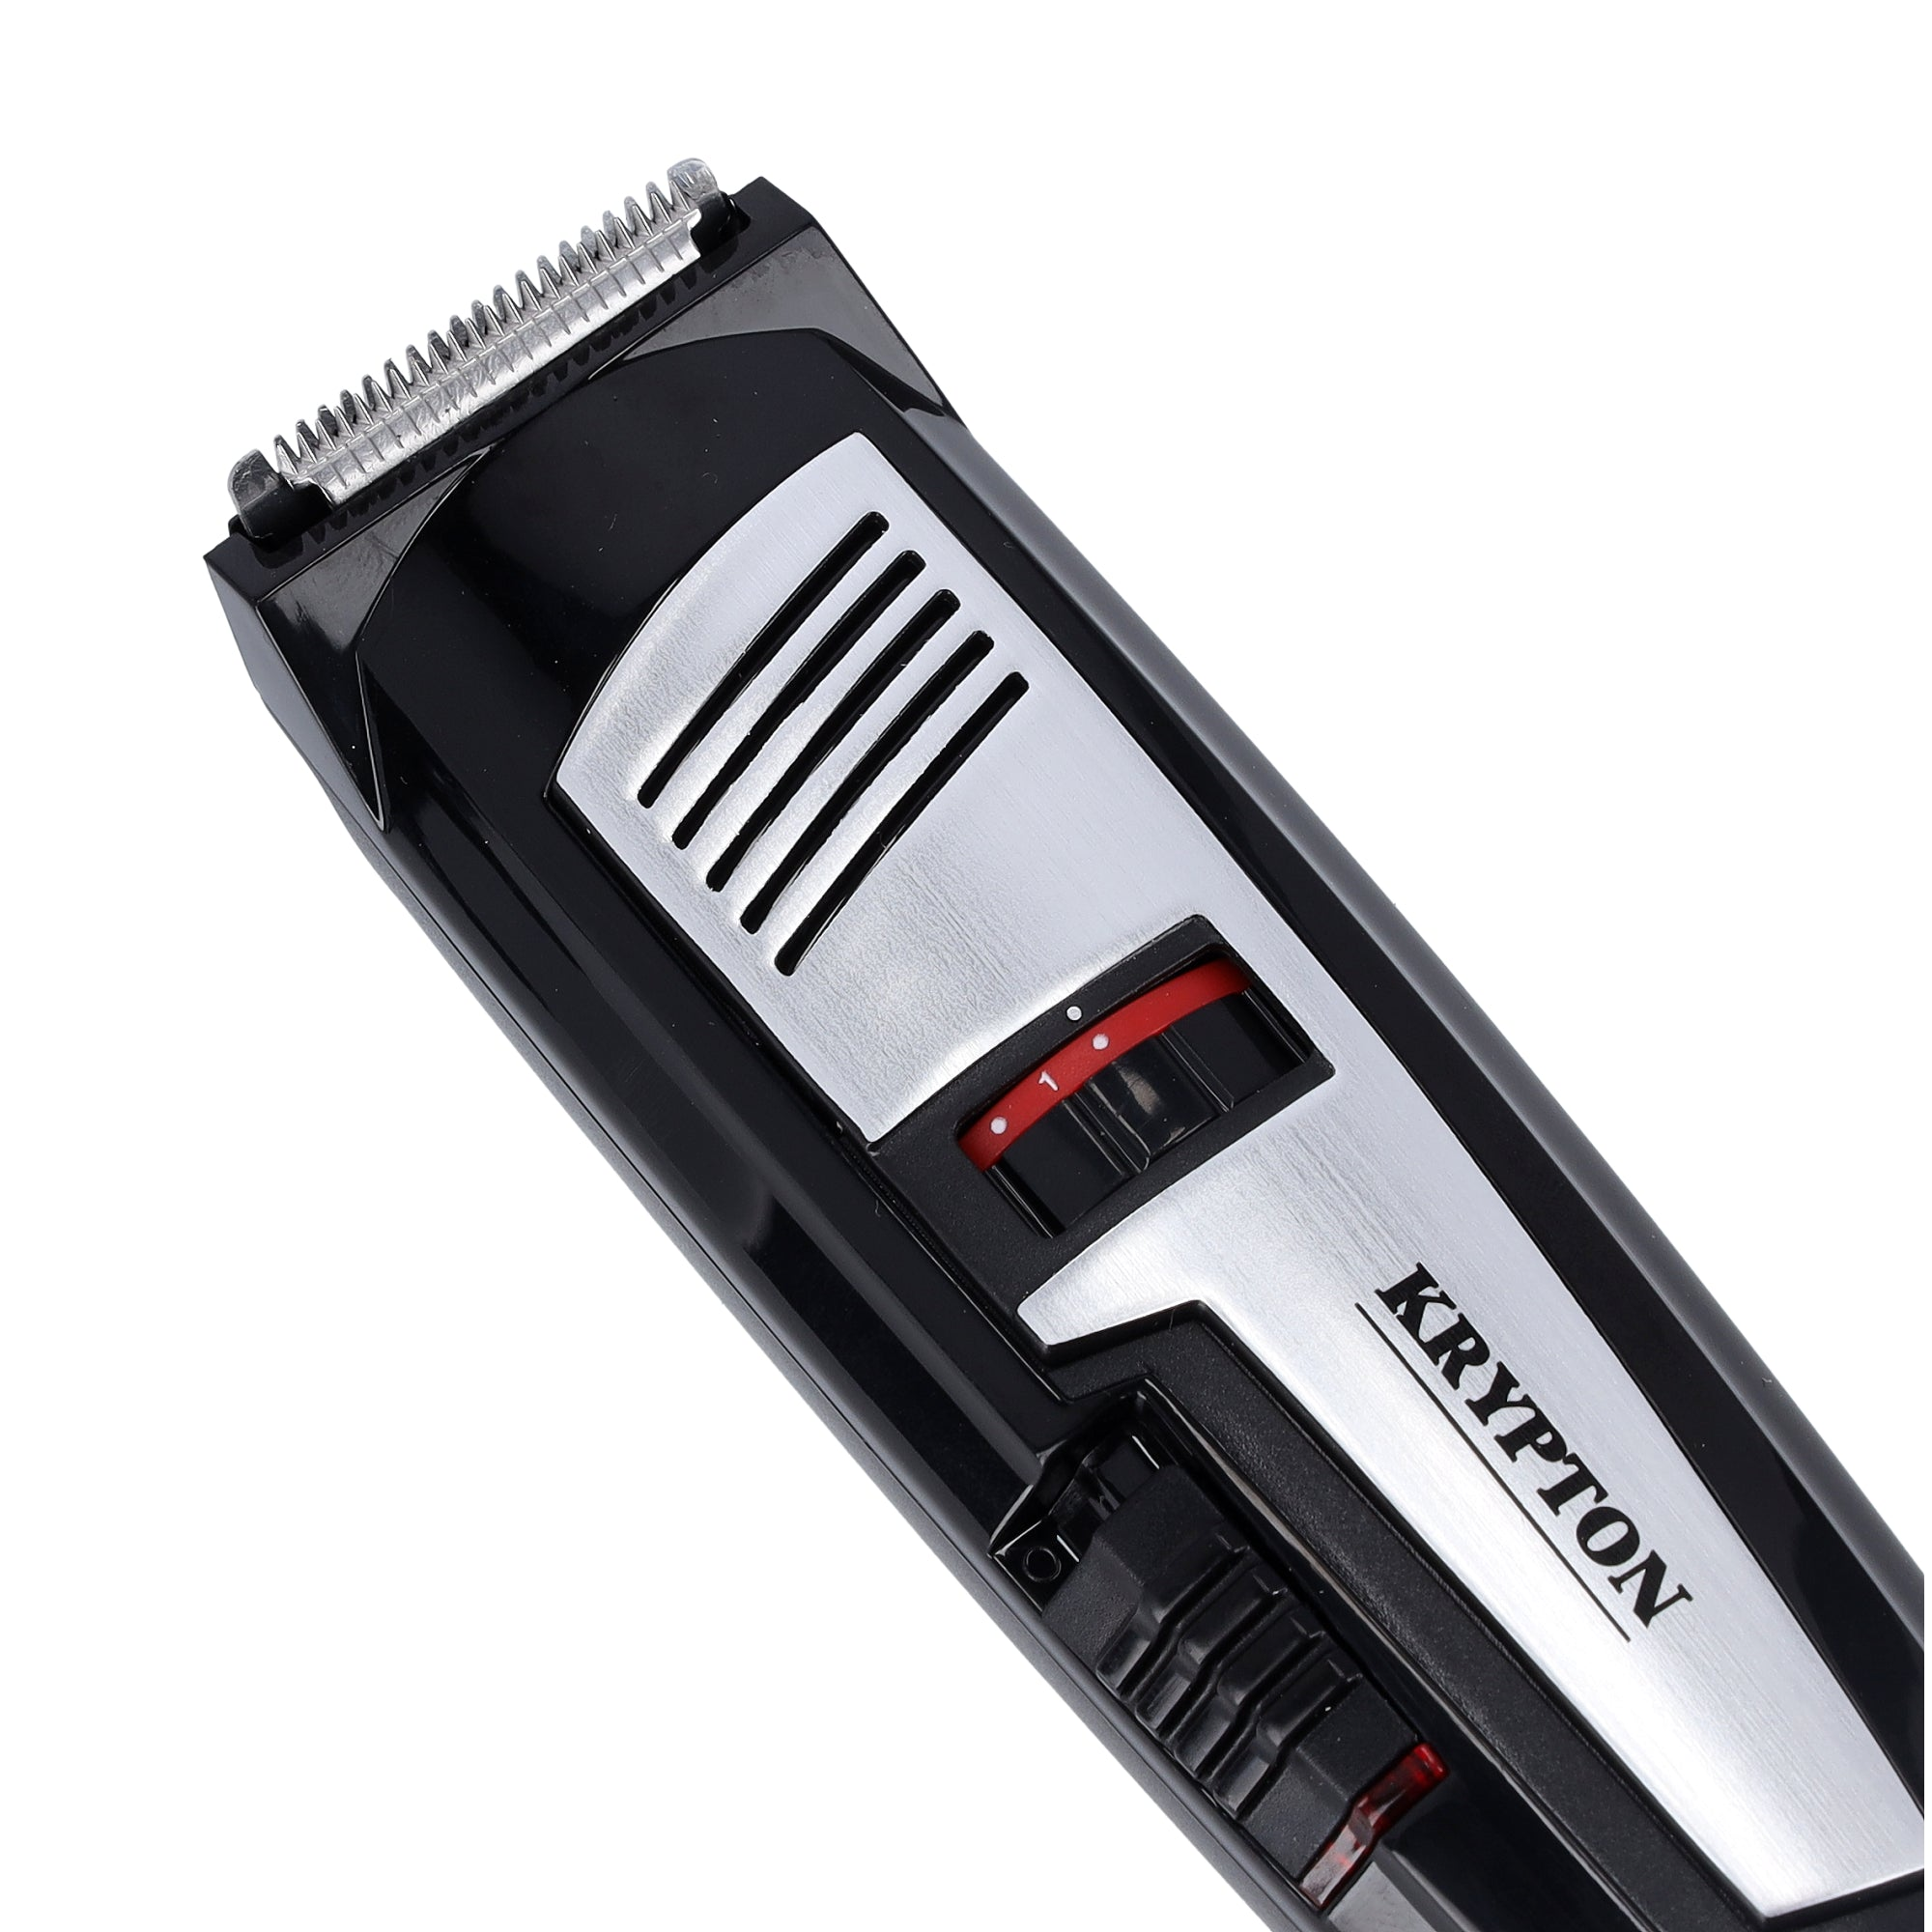 600Mah Stubble Rechargeable Hair Trimmer - Precise Beard Styler with Fine Steel Head | Indicator Lights, Cordless Trimmer, 40 Minutes Working in Single Charge